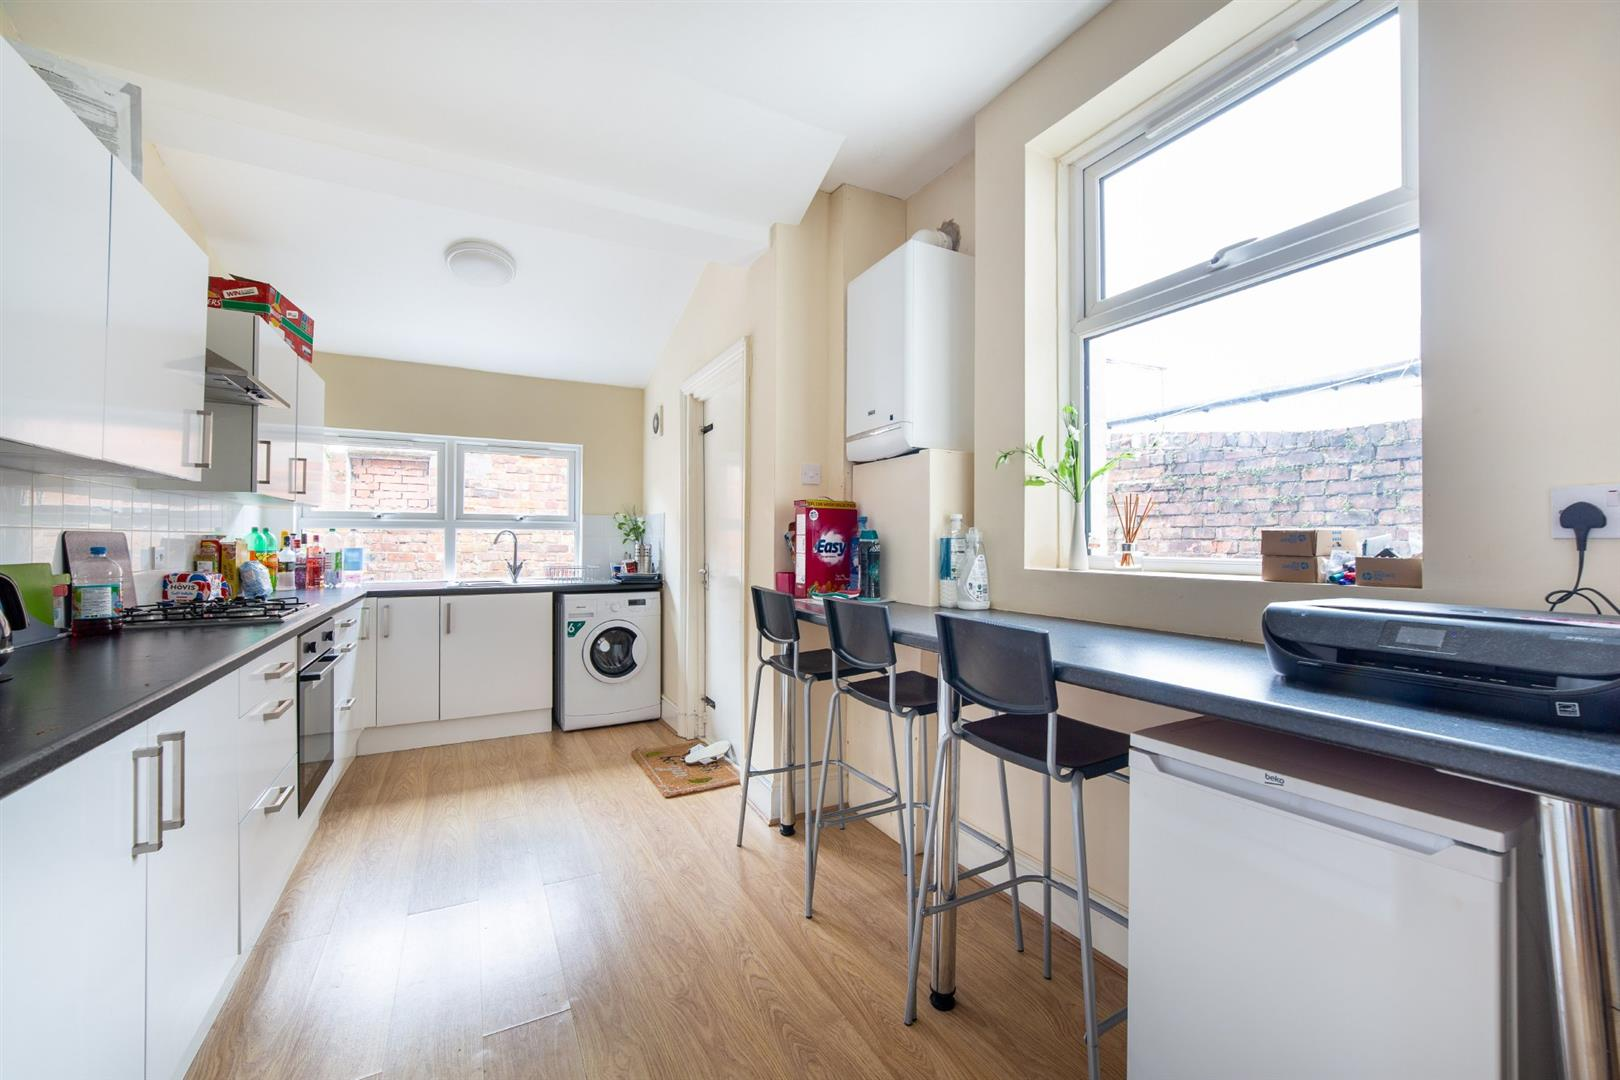 4 bed terraced house to rent in Newcastle Upon Tyne, NE6 5HS, NE6